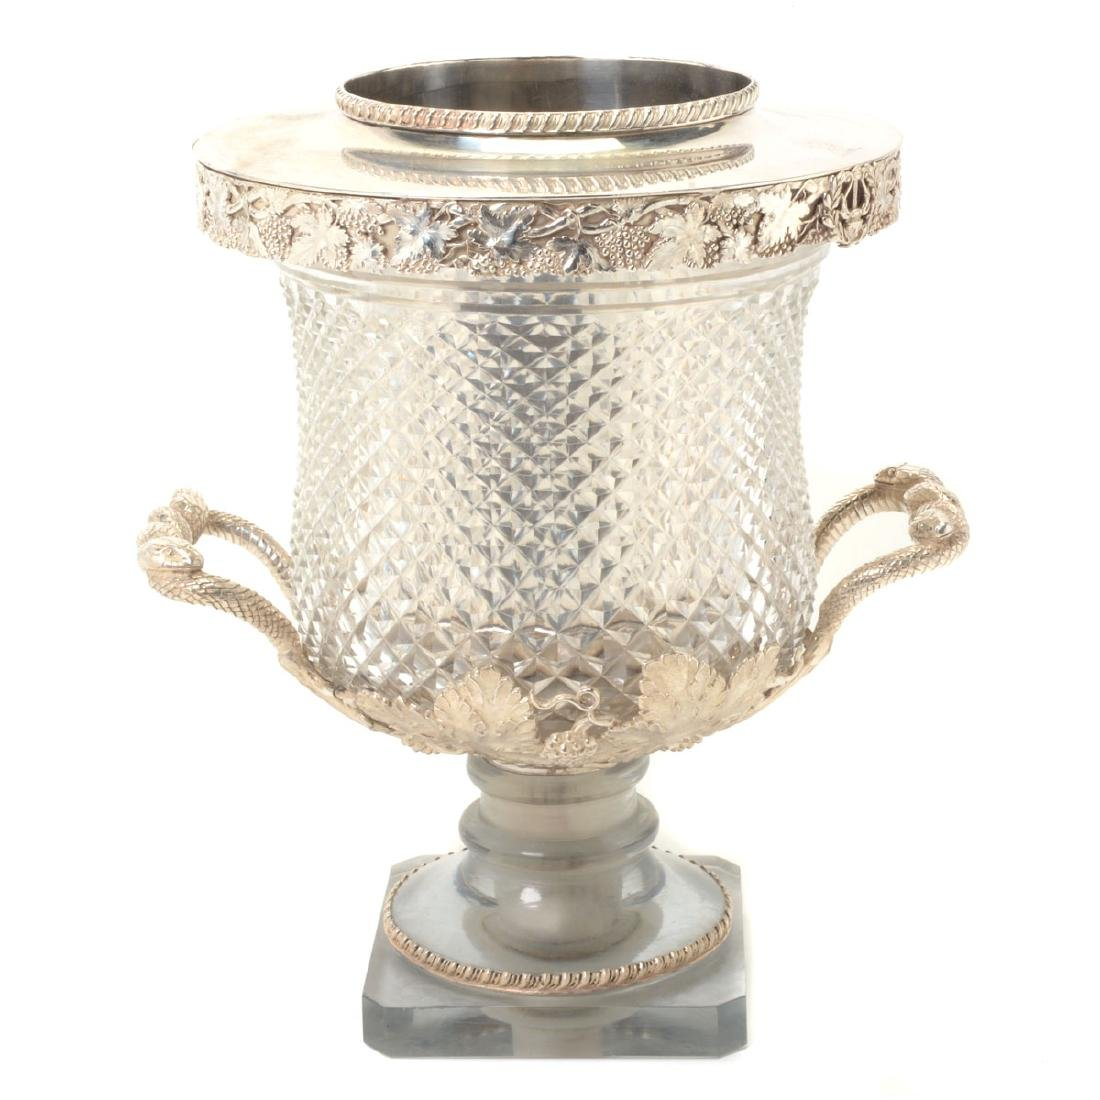 European Silverplate & Cut Glass Champagne Cooler with